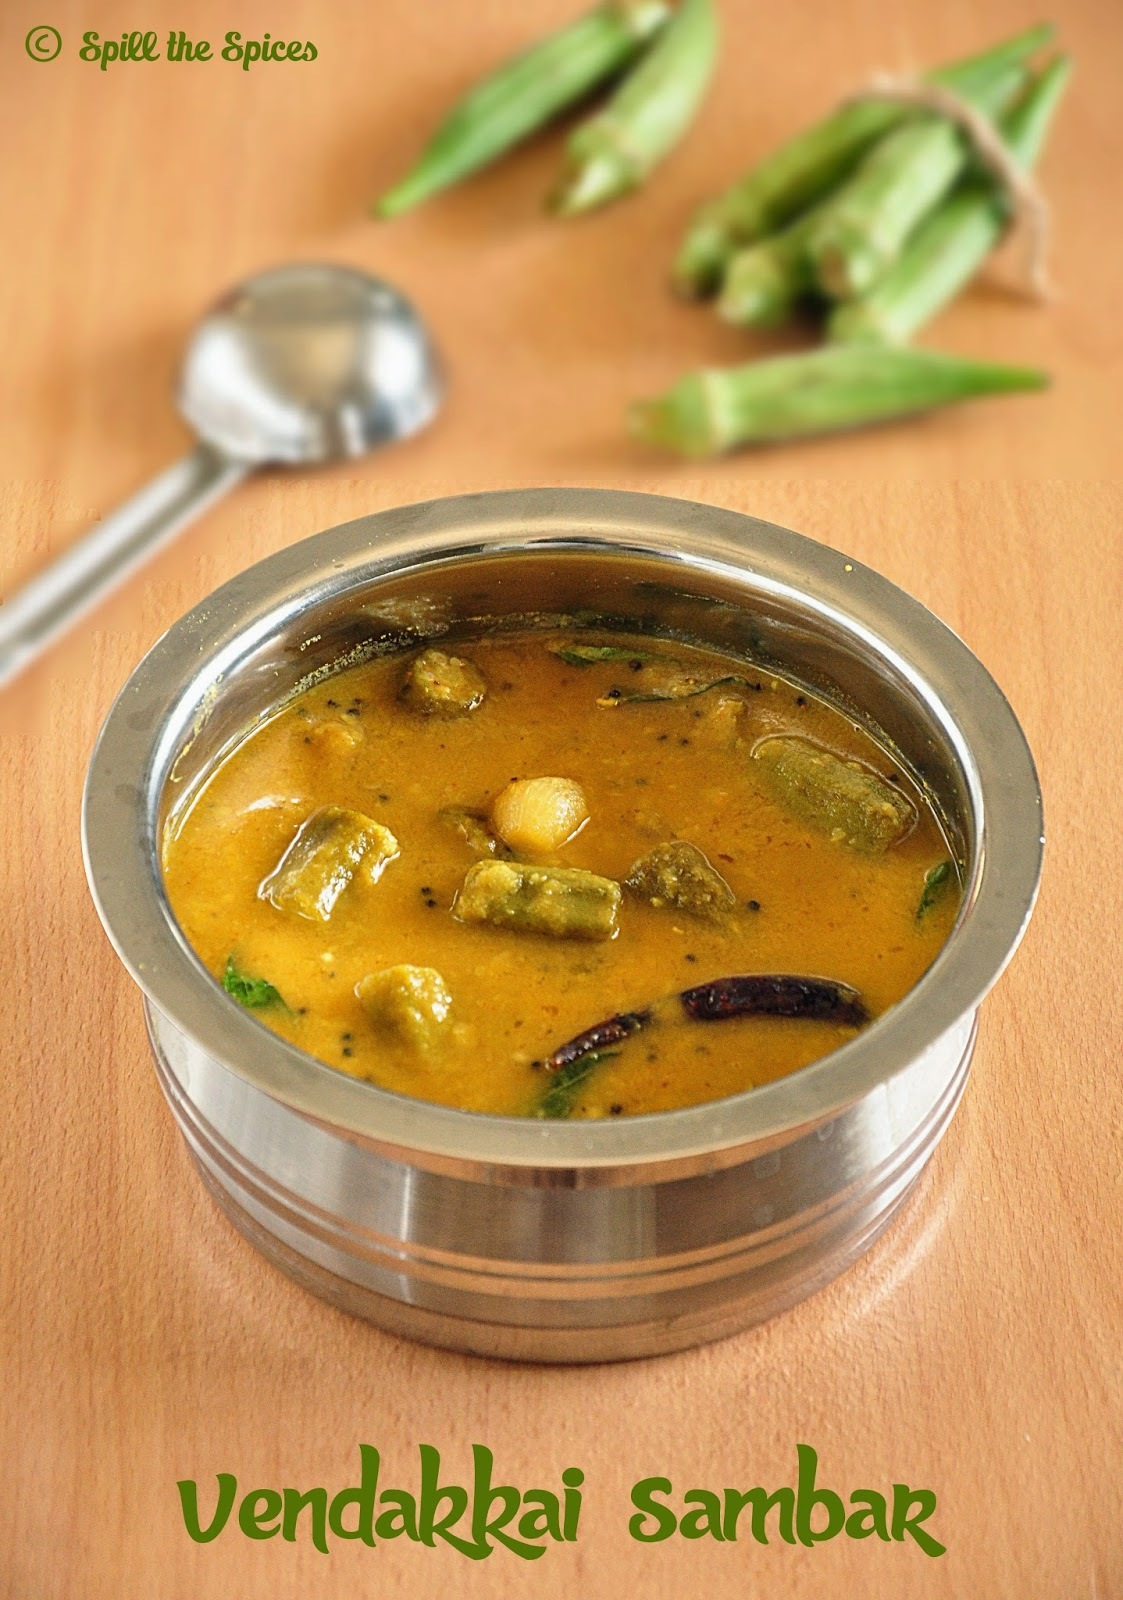 Vendakkai Sambar | Ladies Finger Sambar